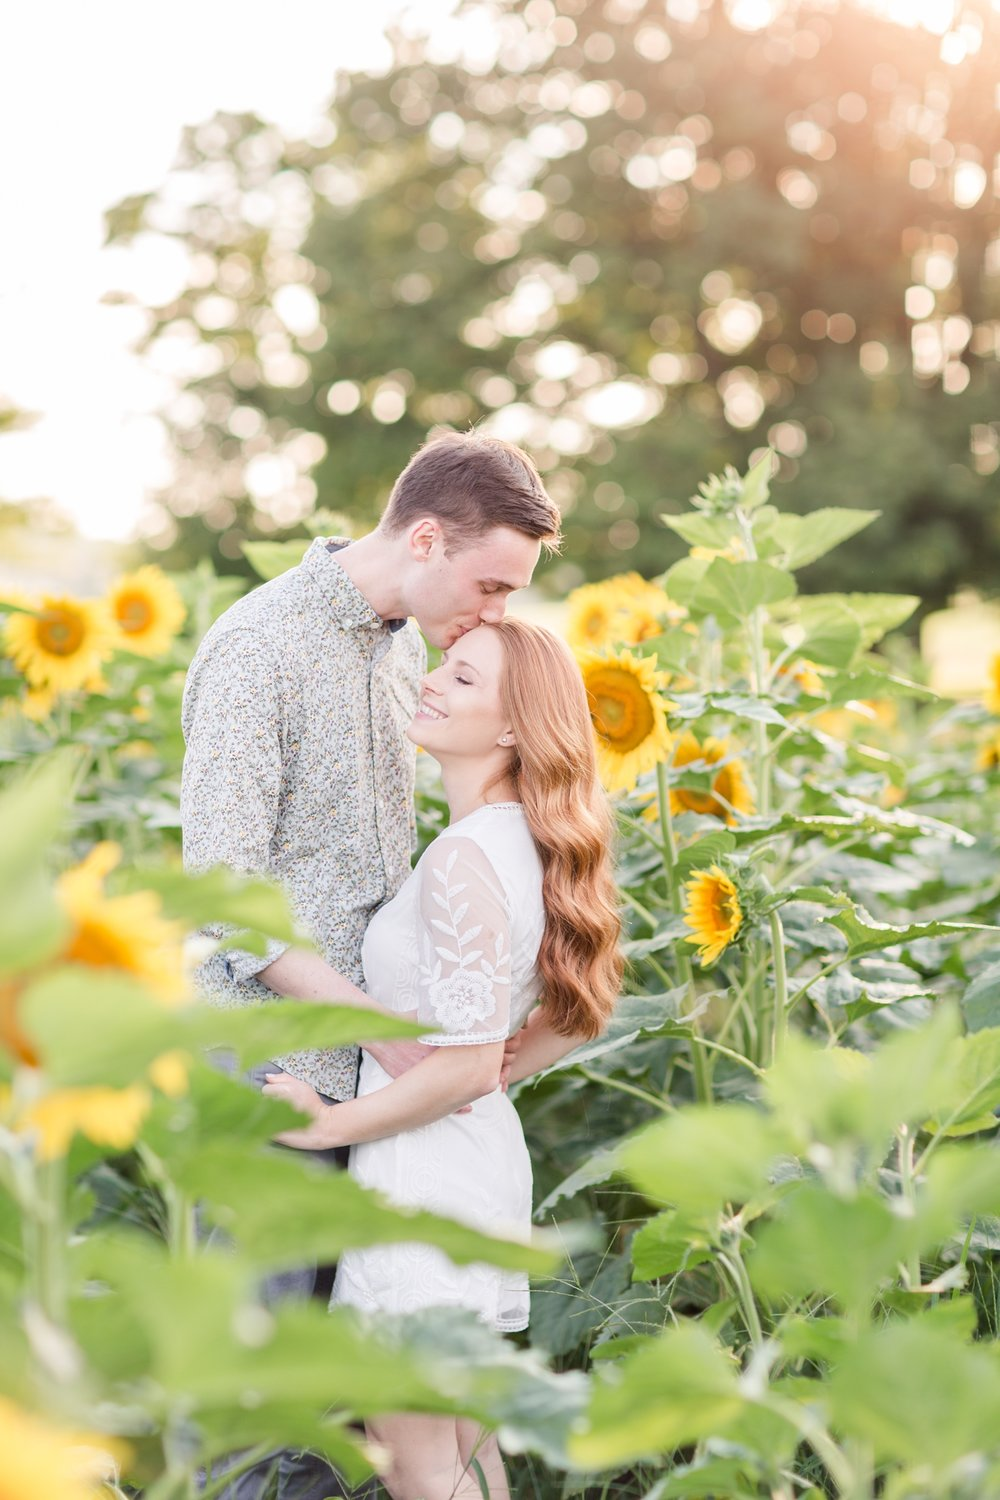 That light and the sunflowers is magical with these two!!